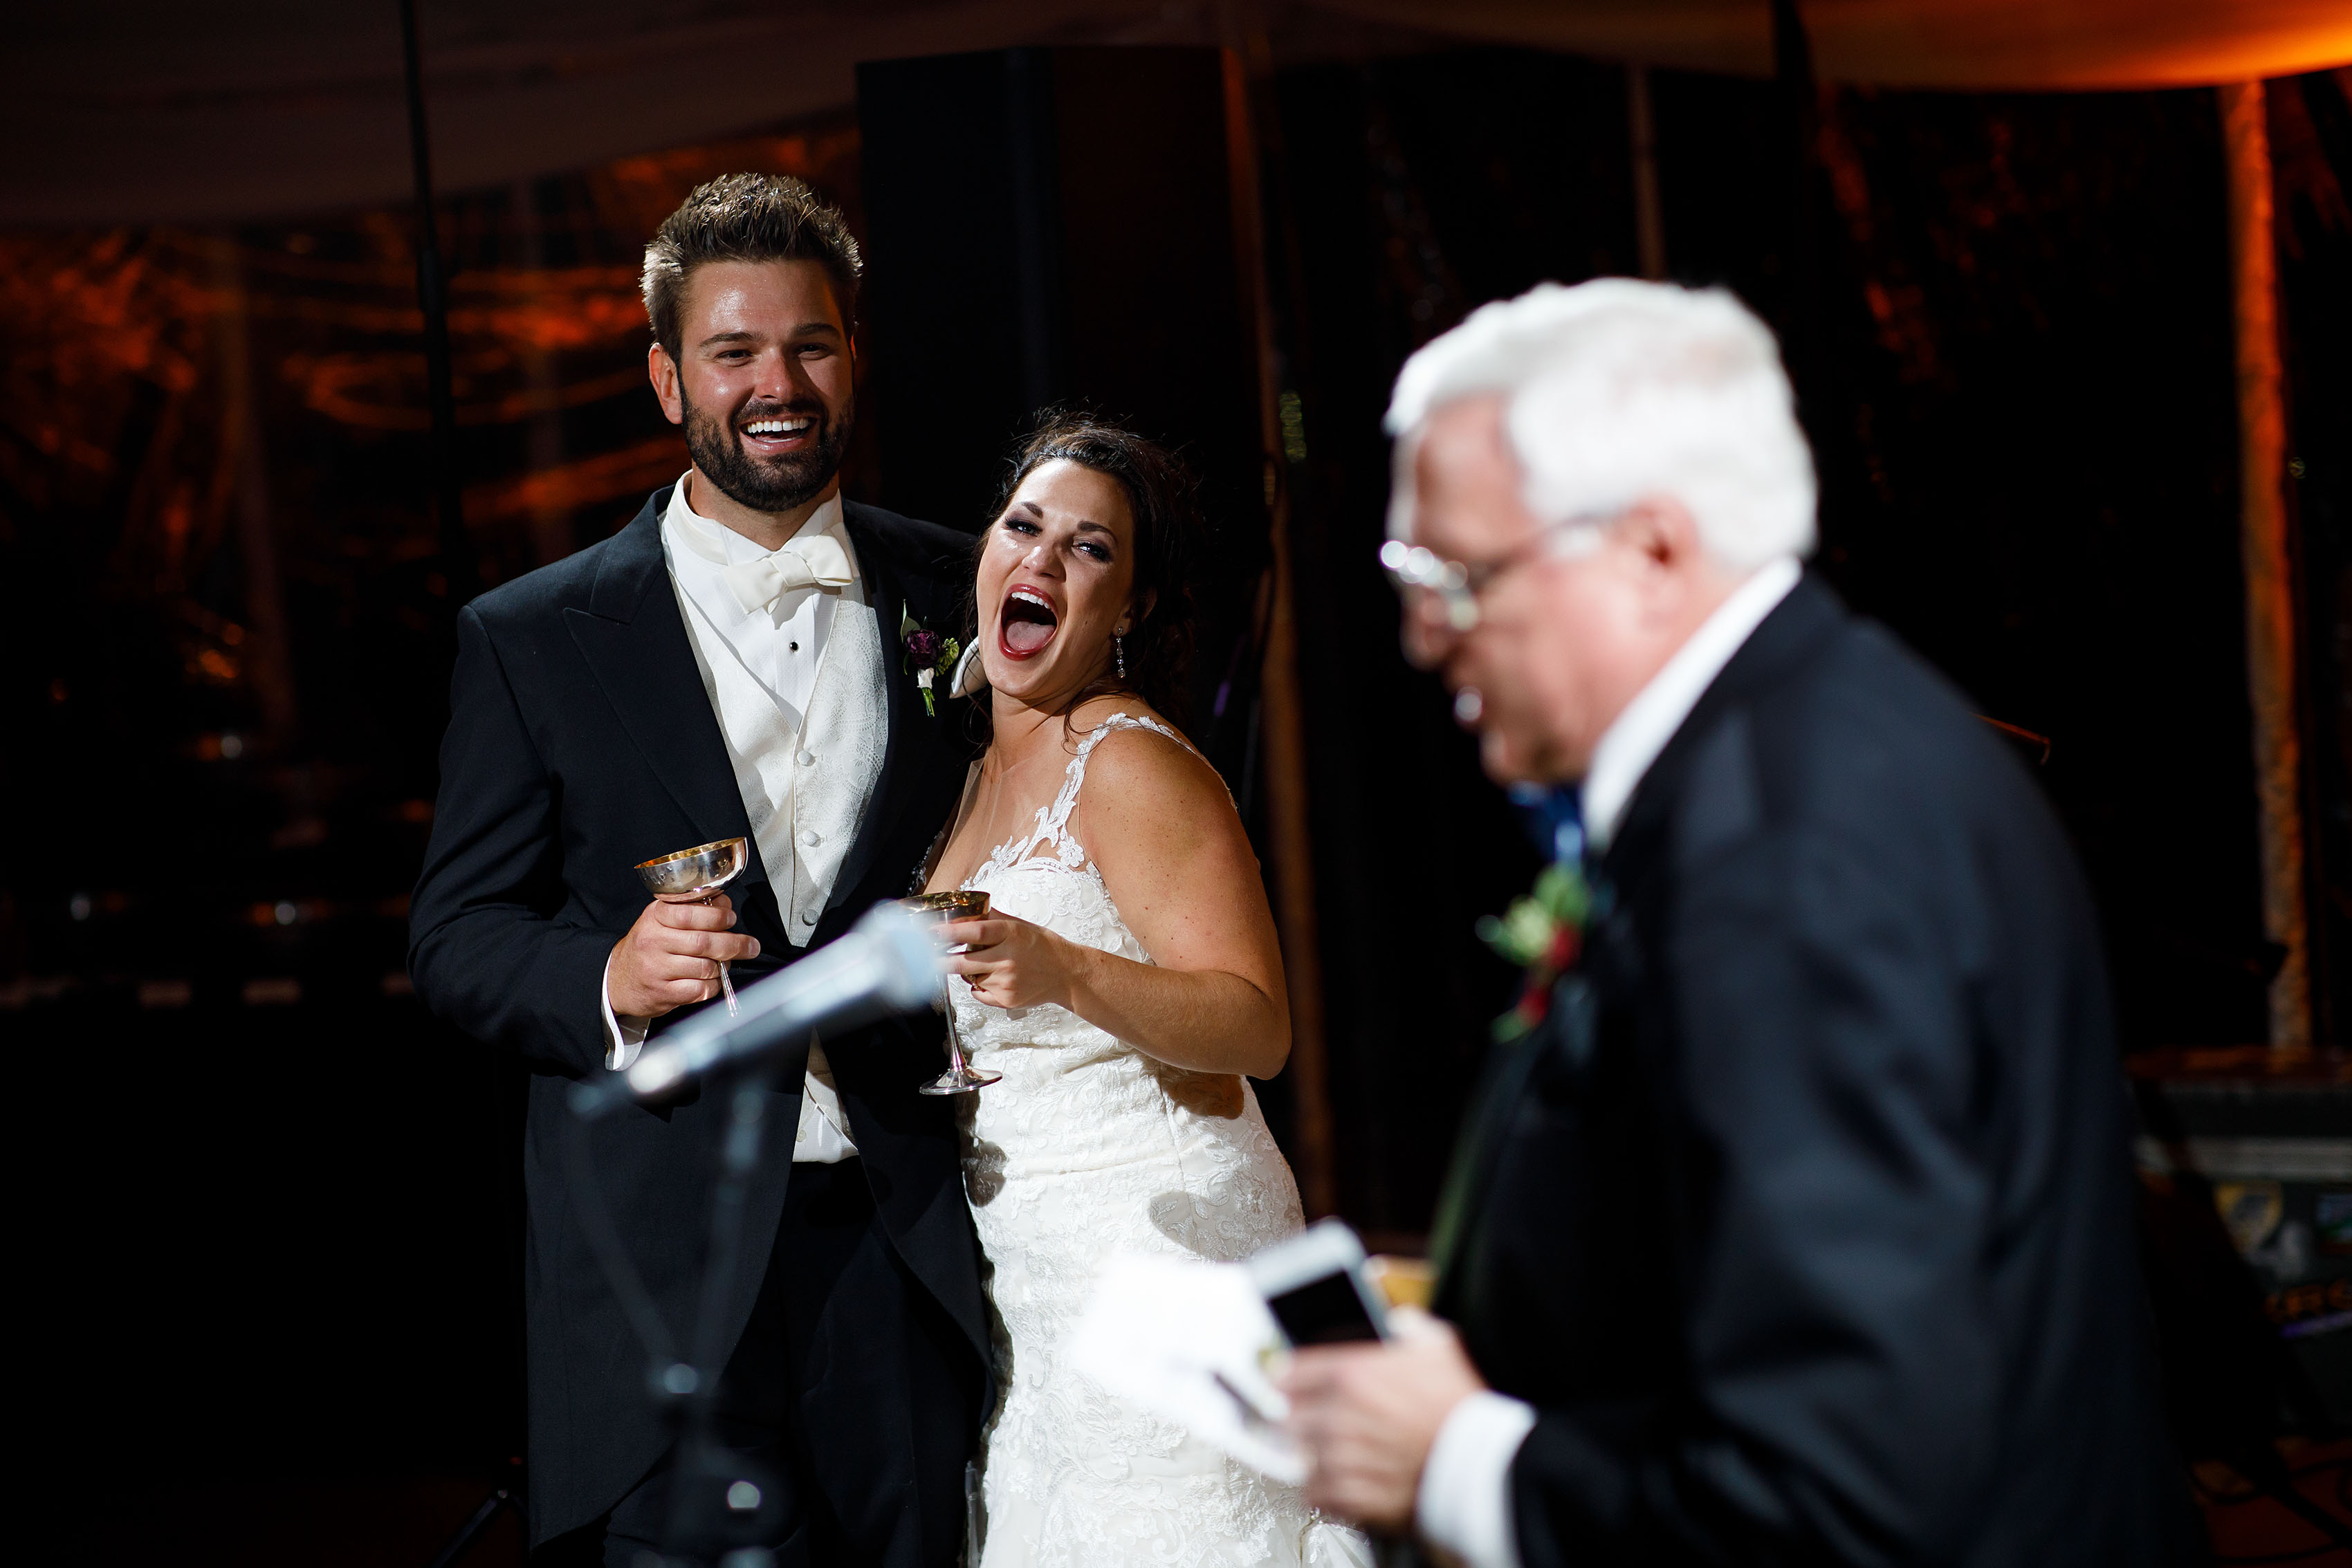 The couple react as the father of the bride gives a toast